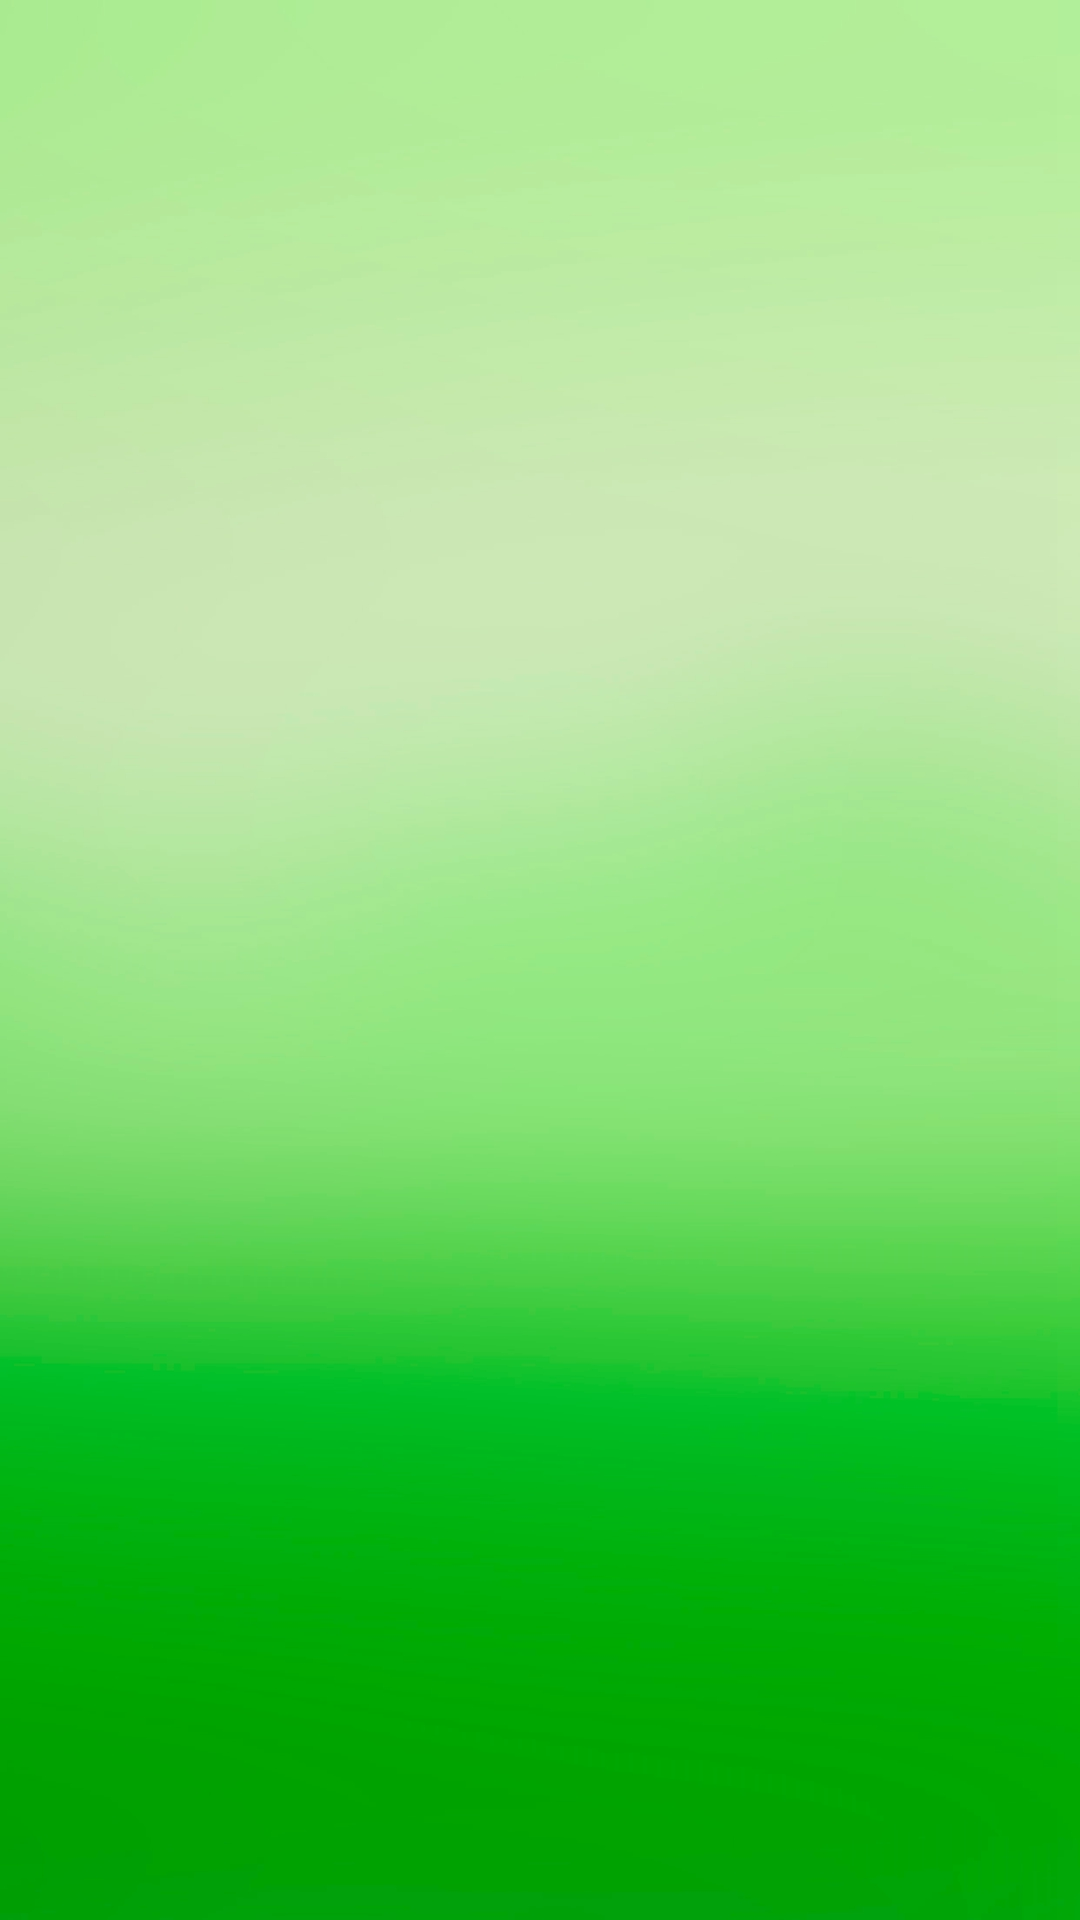 Abstract-Green-Blur-Gradation-iPhone-wallpaper-wp3002975